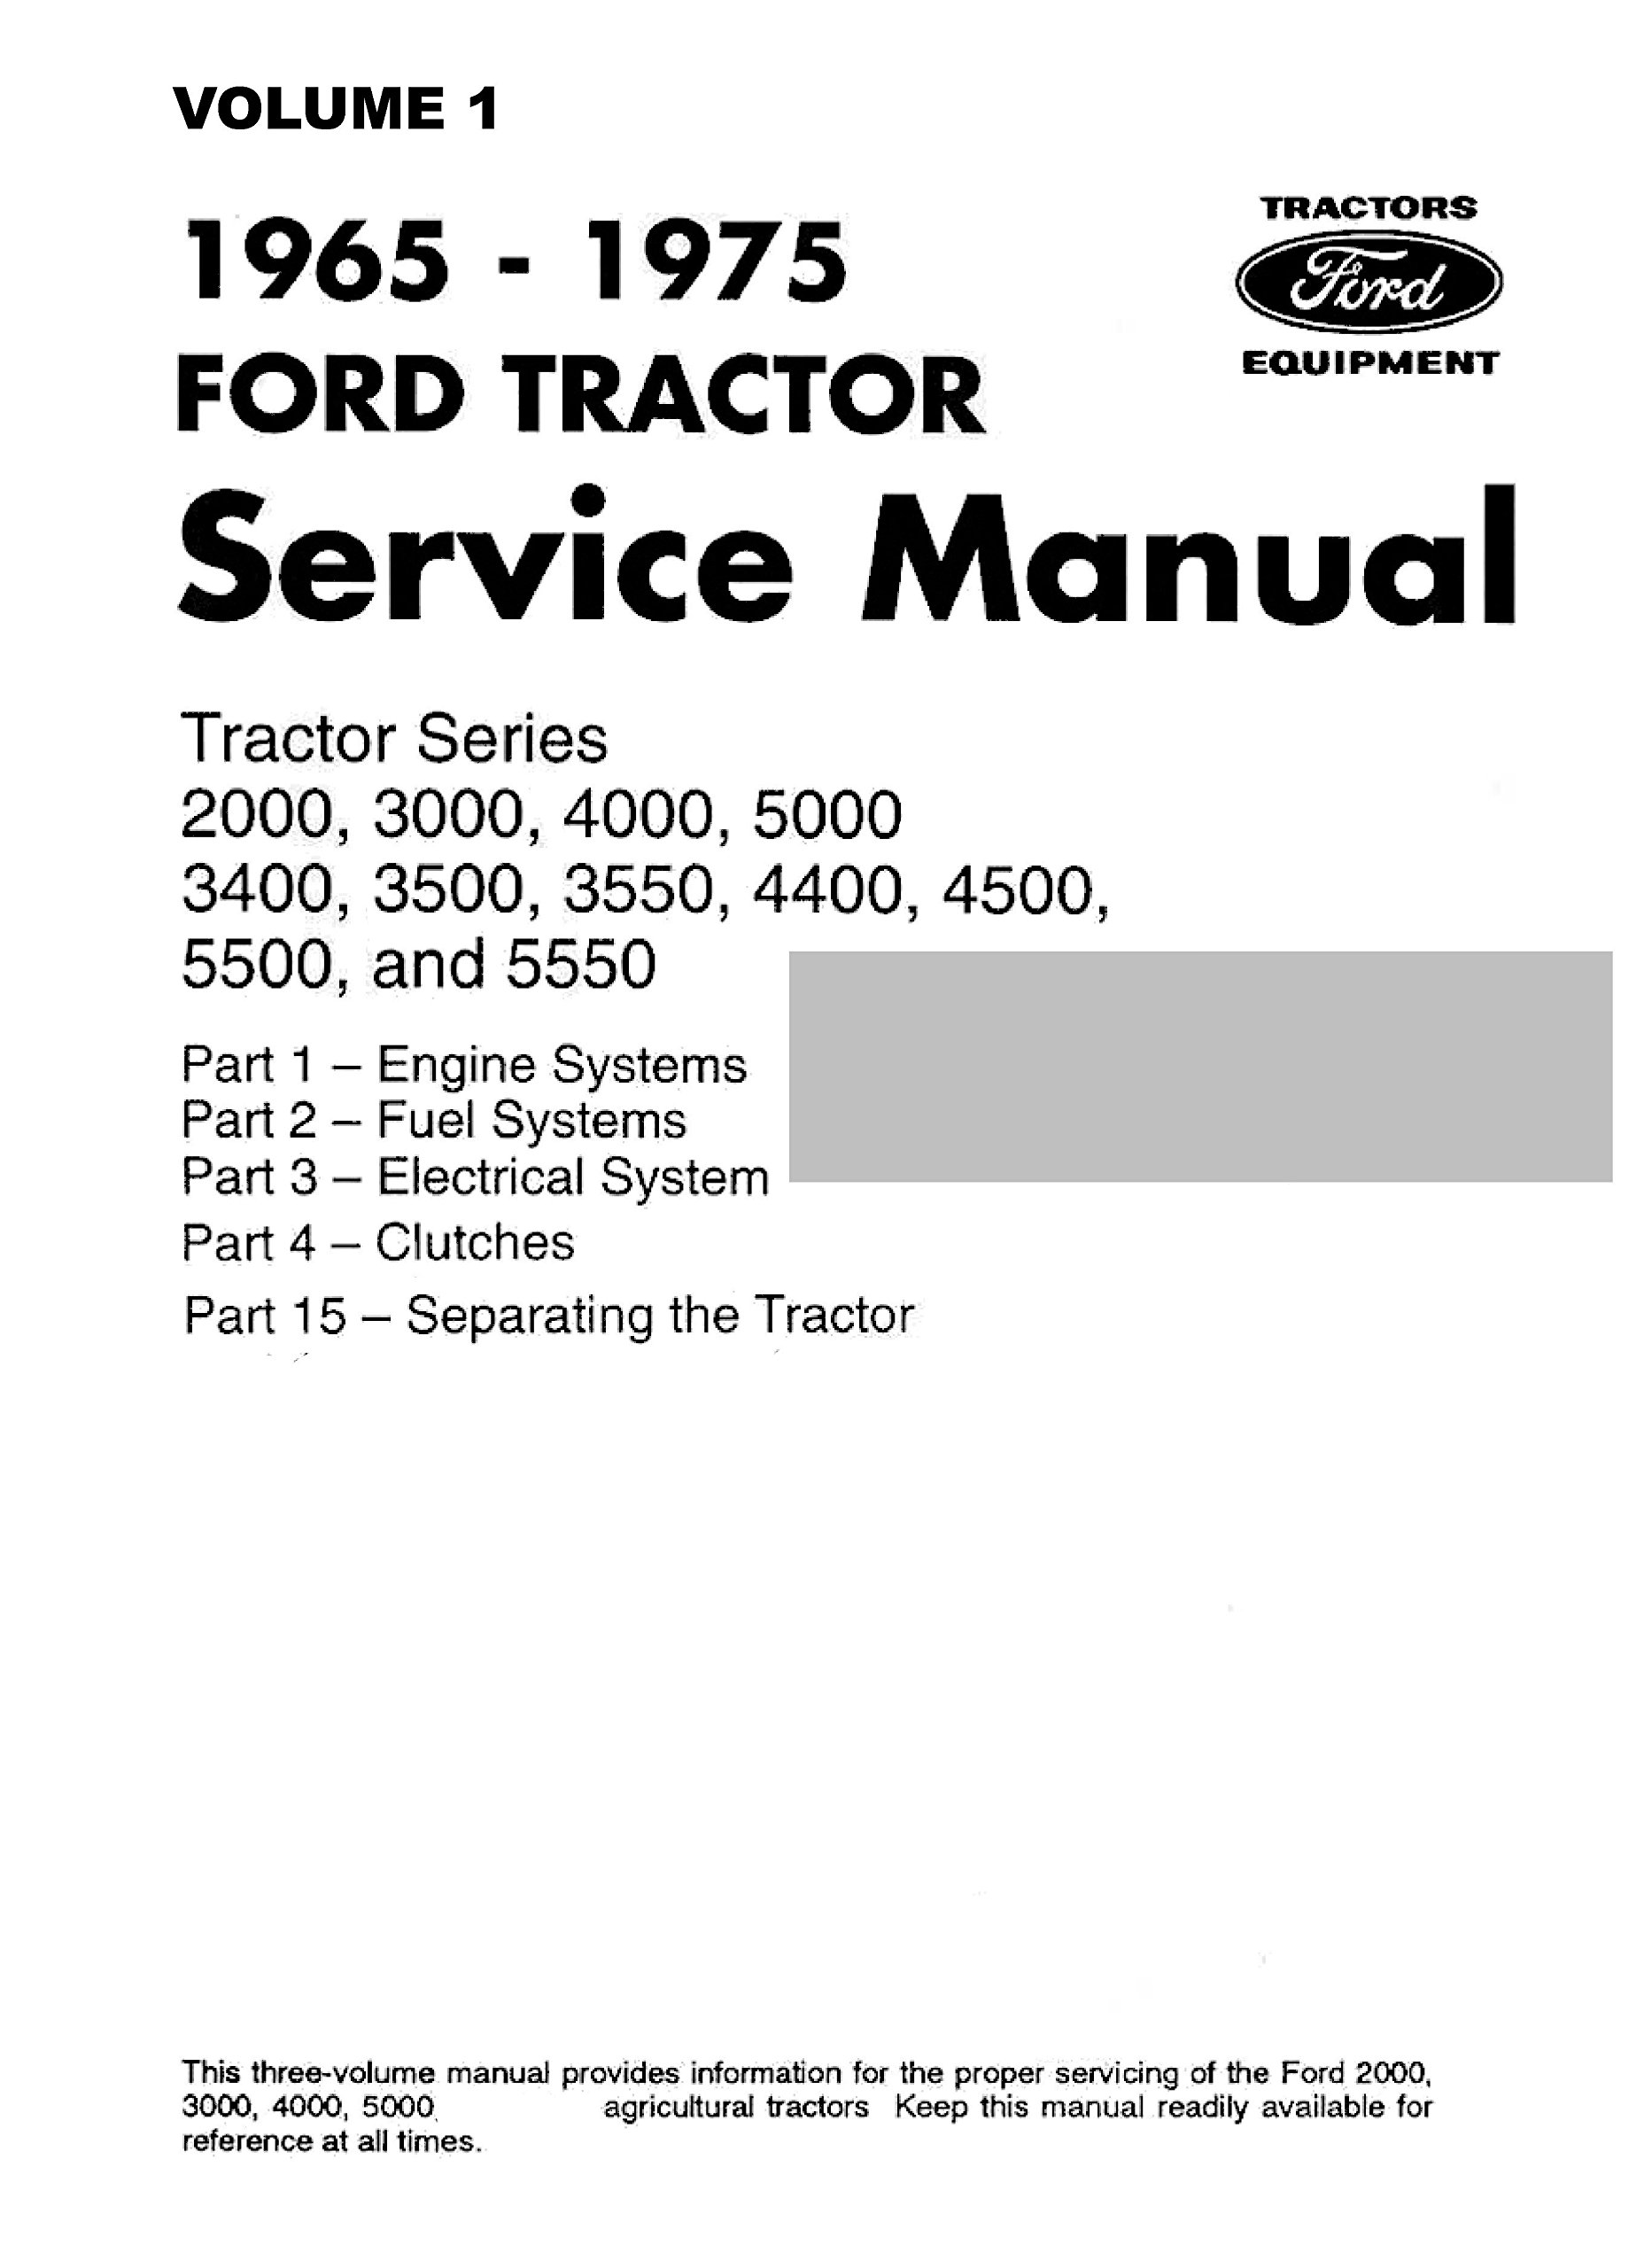 Ford Tractor Series 2000, 3000, 4000, 5000, 3400, 3500, 3550, 4400, 4500,  5500, 5550 Service Manual: FORD: 0763616420067: Amazon.com: Books